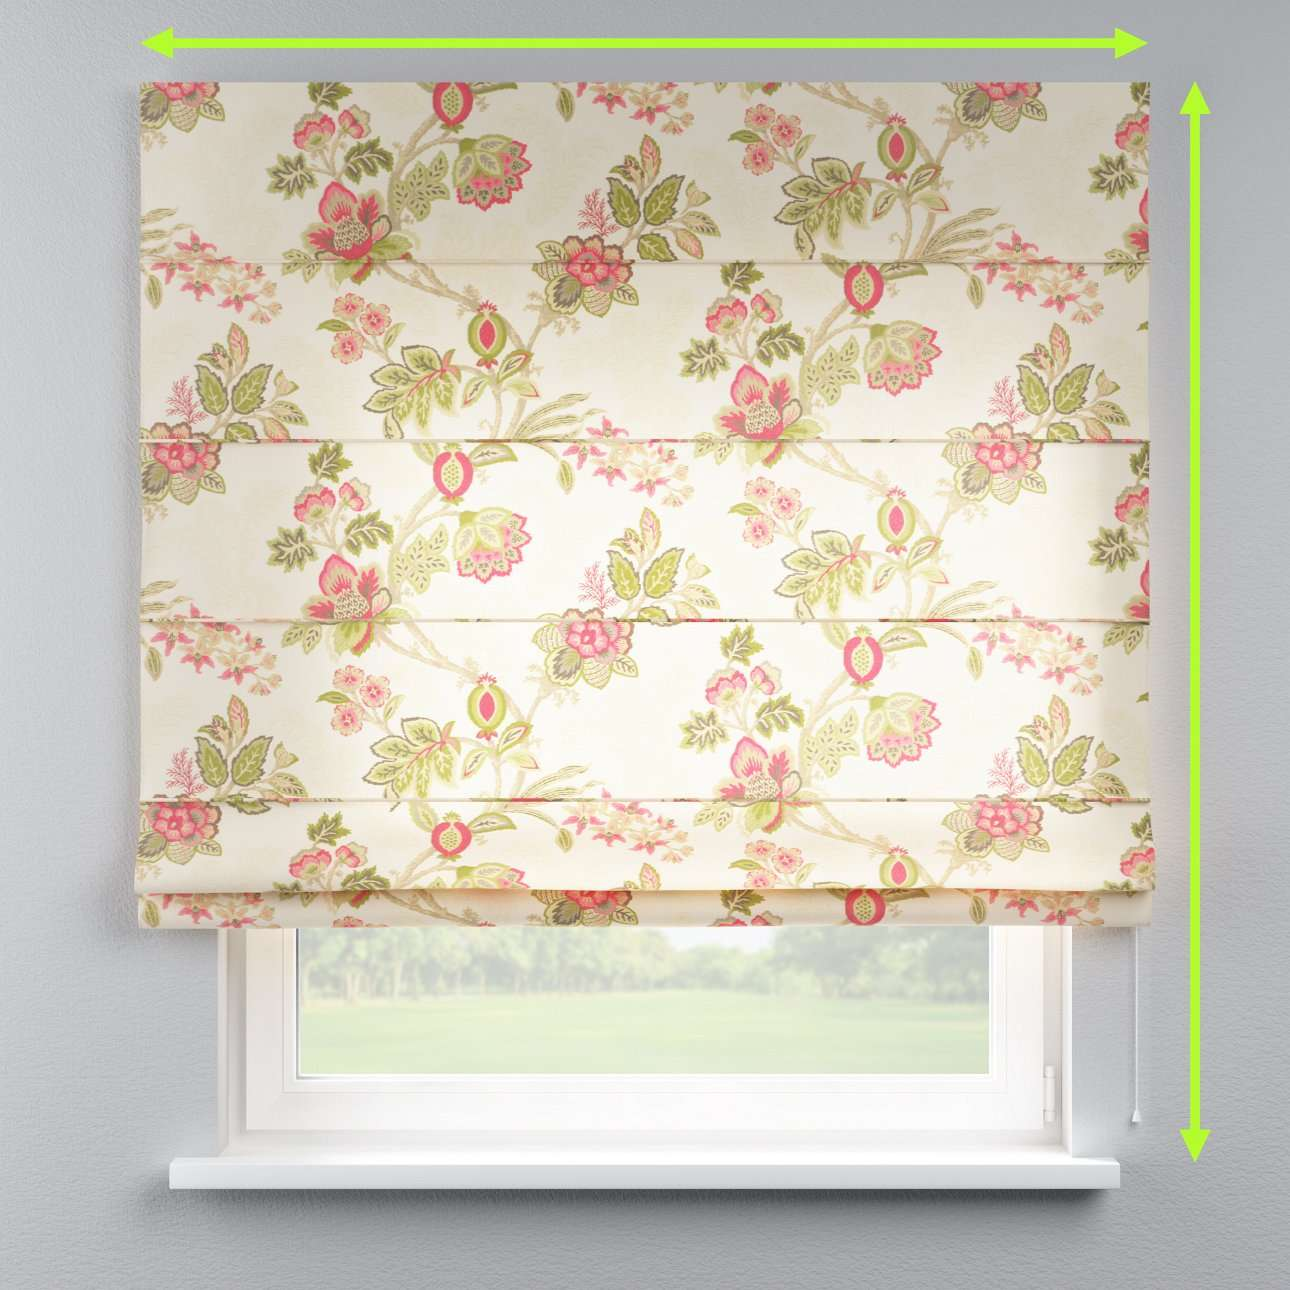 Capri roman blind in collection Flowers, fabric: 140-98